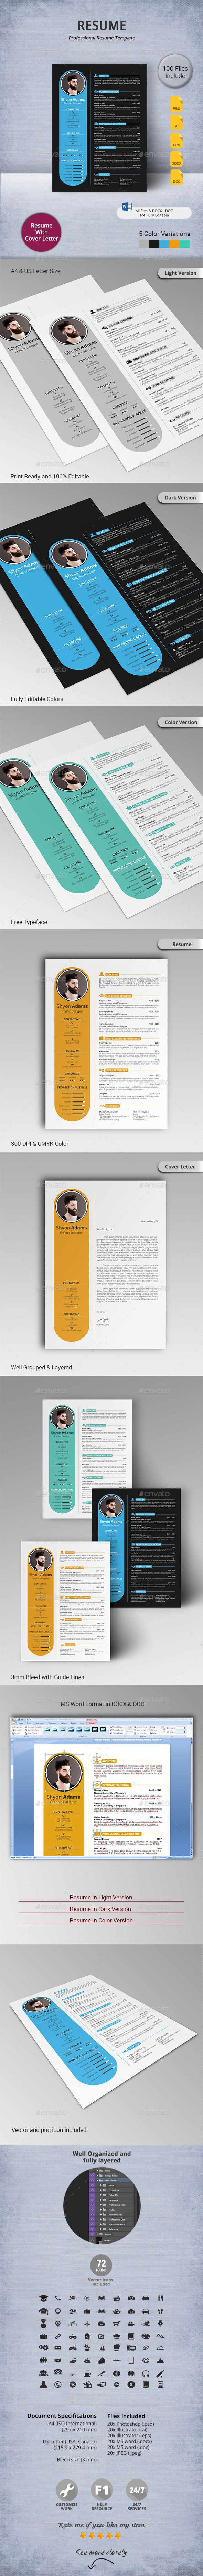 #Resume - Resumes #Stationery Download here: https://graphicriver.net/item/resume/11119597?ref=alena994